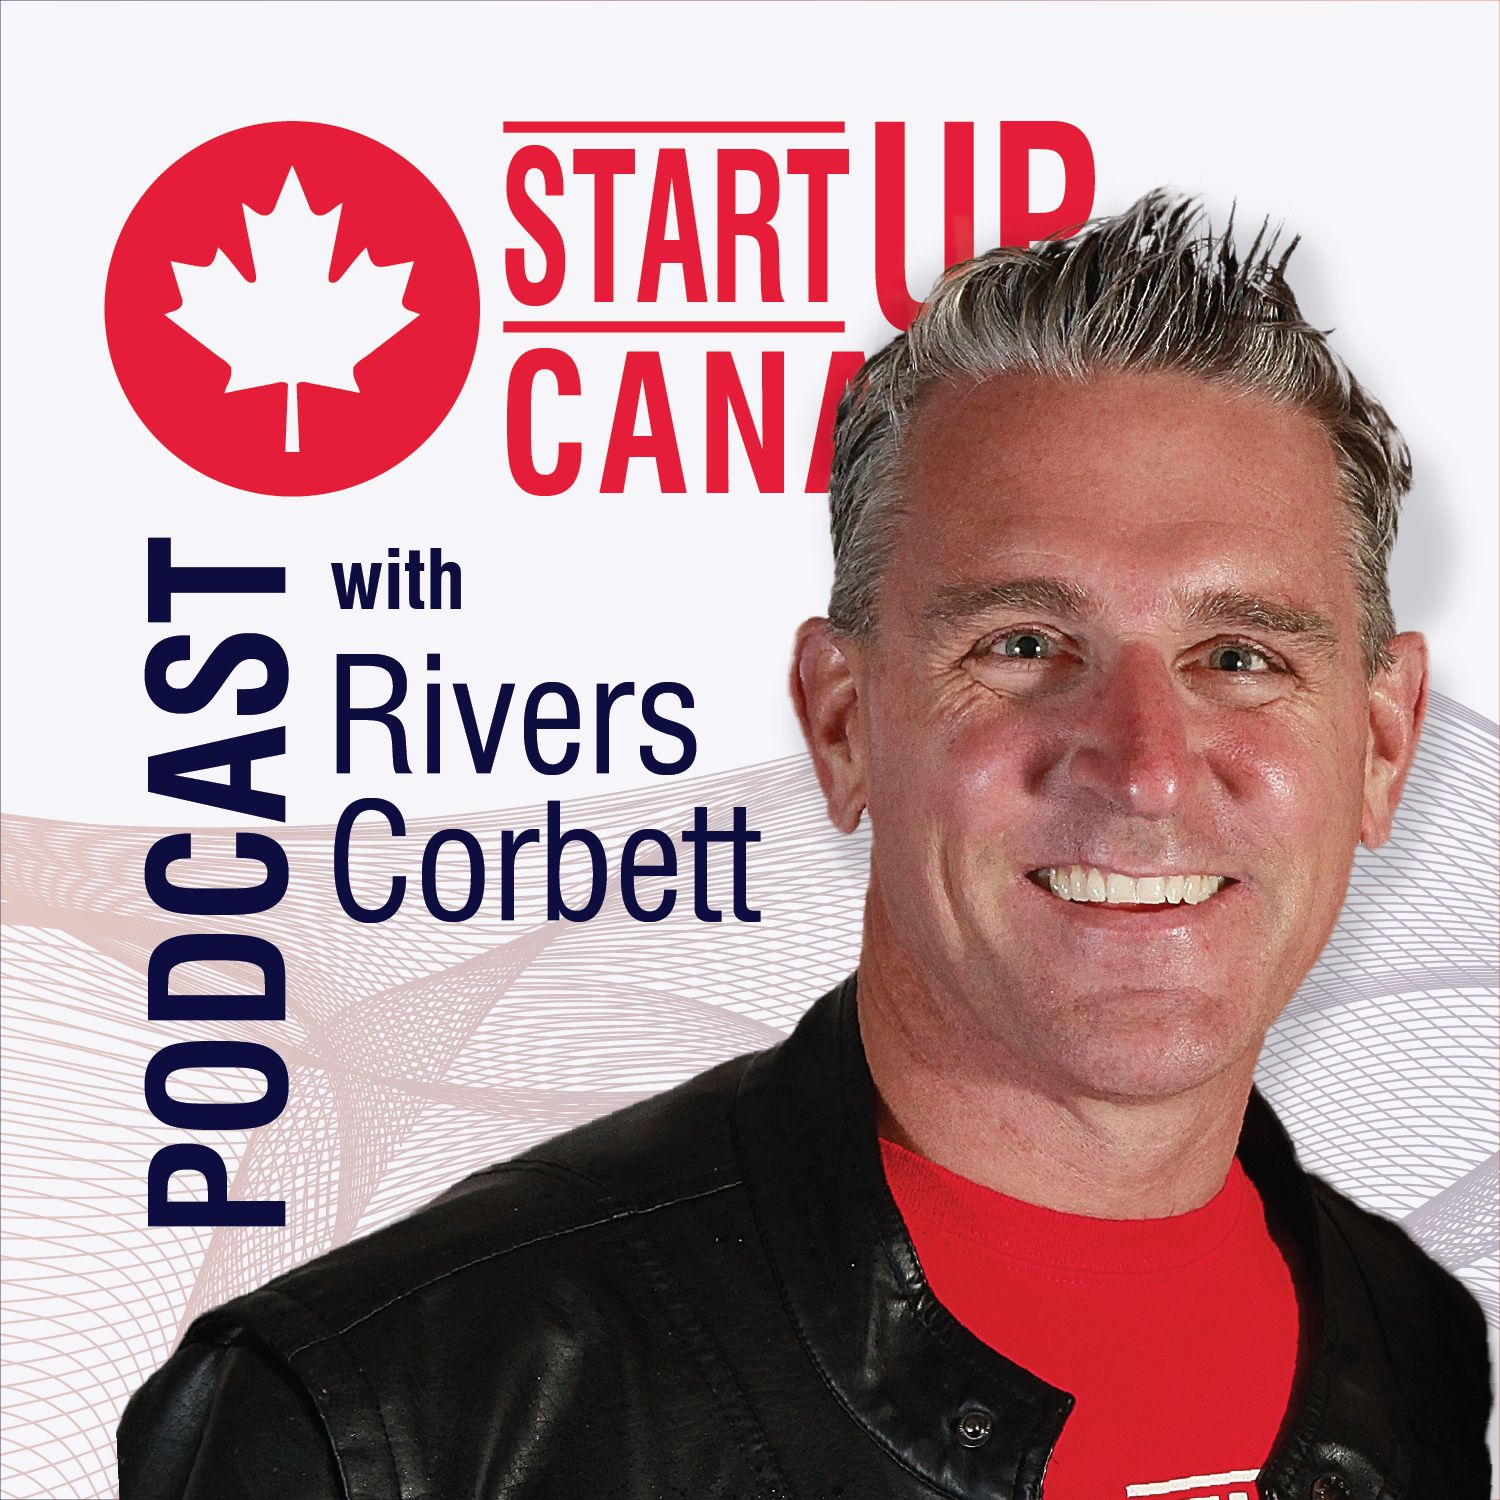 Startup Canada Podcast E214 - Fireside Conference X Startup Podcast with 14 Entrepreneurs